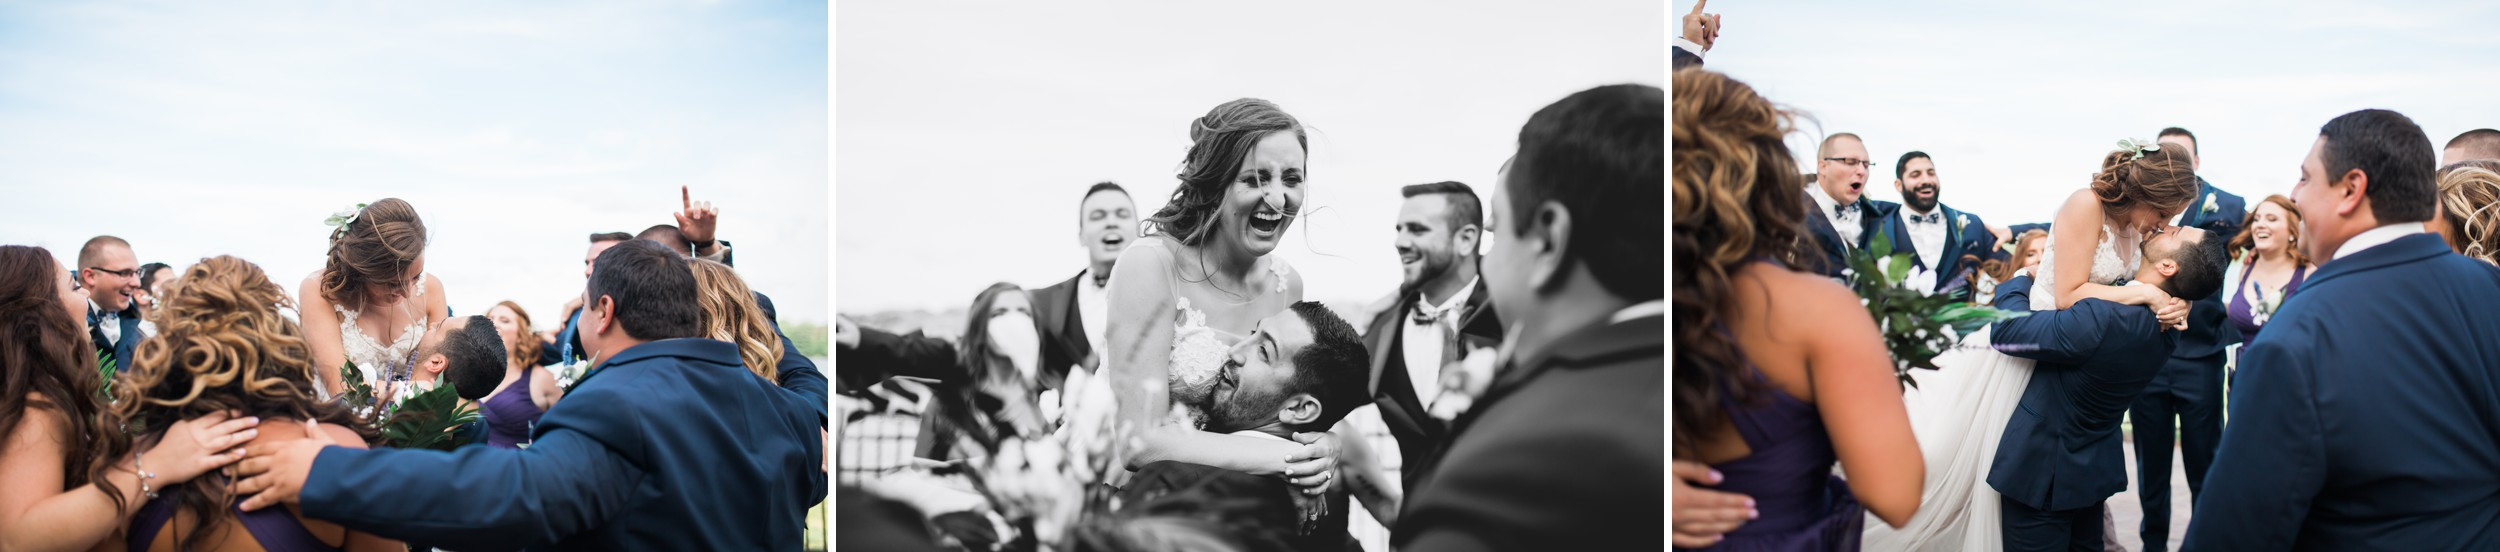 Now this is a bridal party that knows how to have fun.